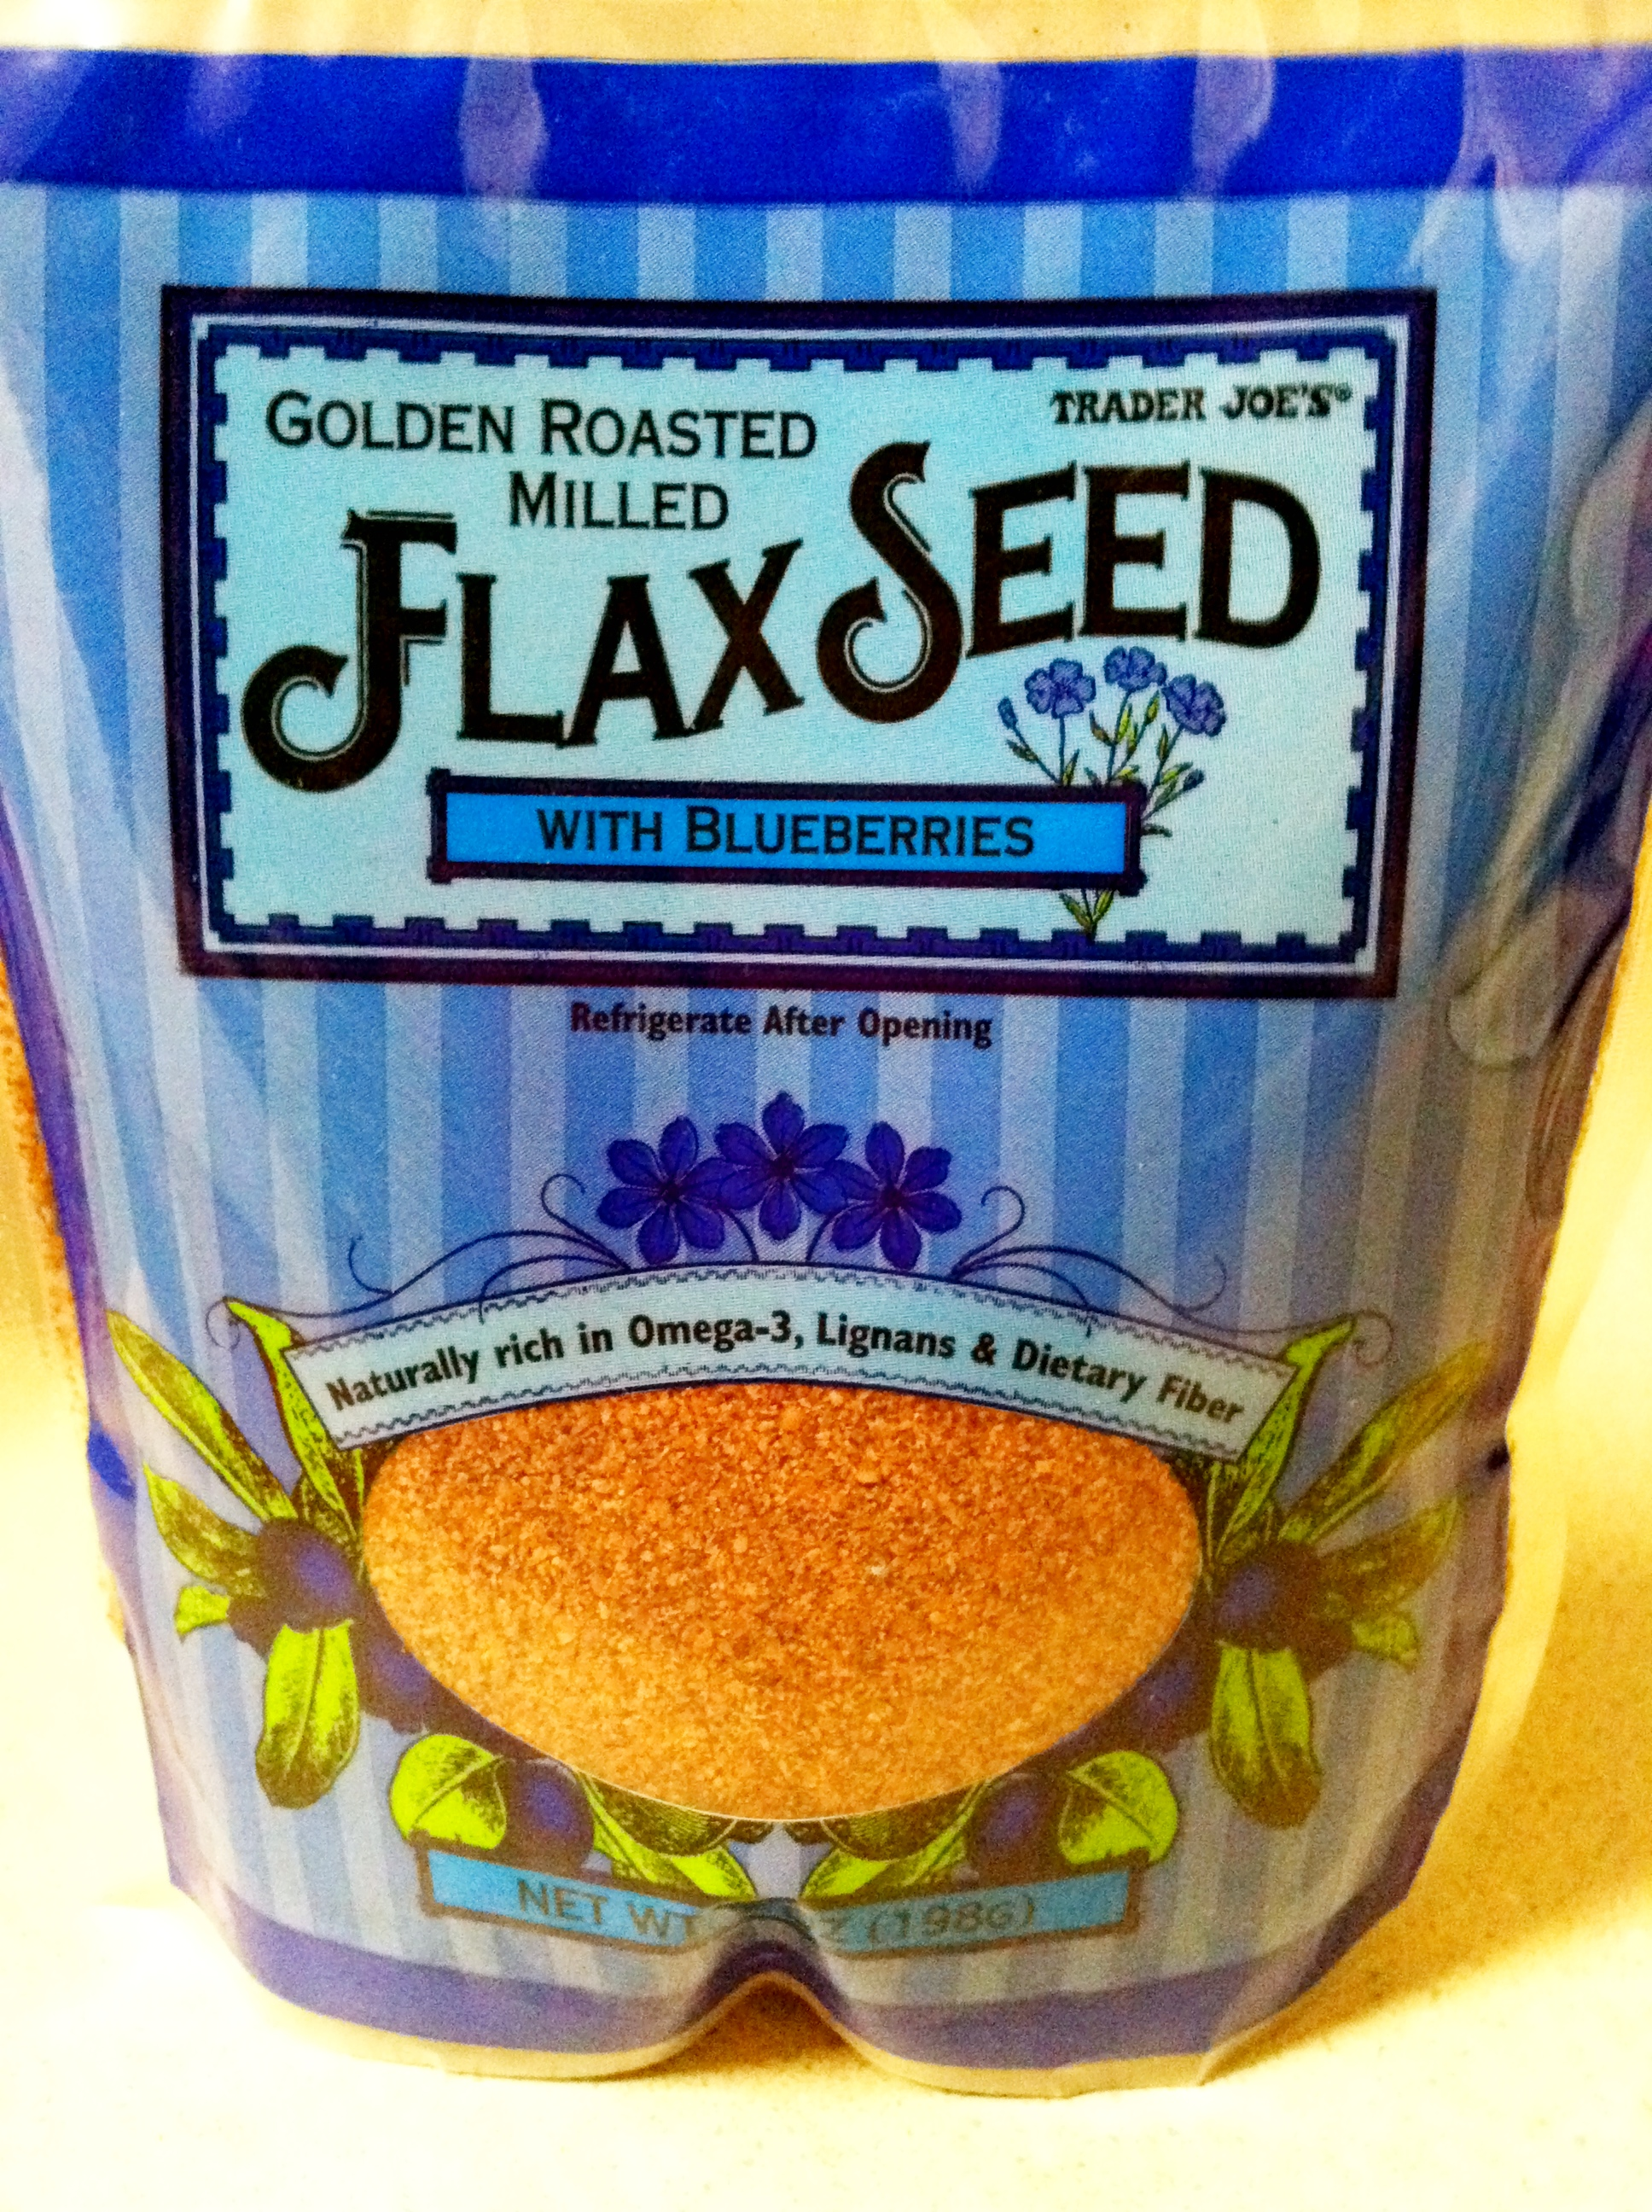 Trader Joes Golden Roasted Milled Flax Seed with Blueberries